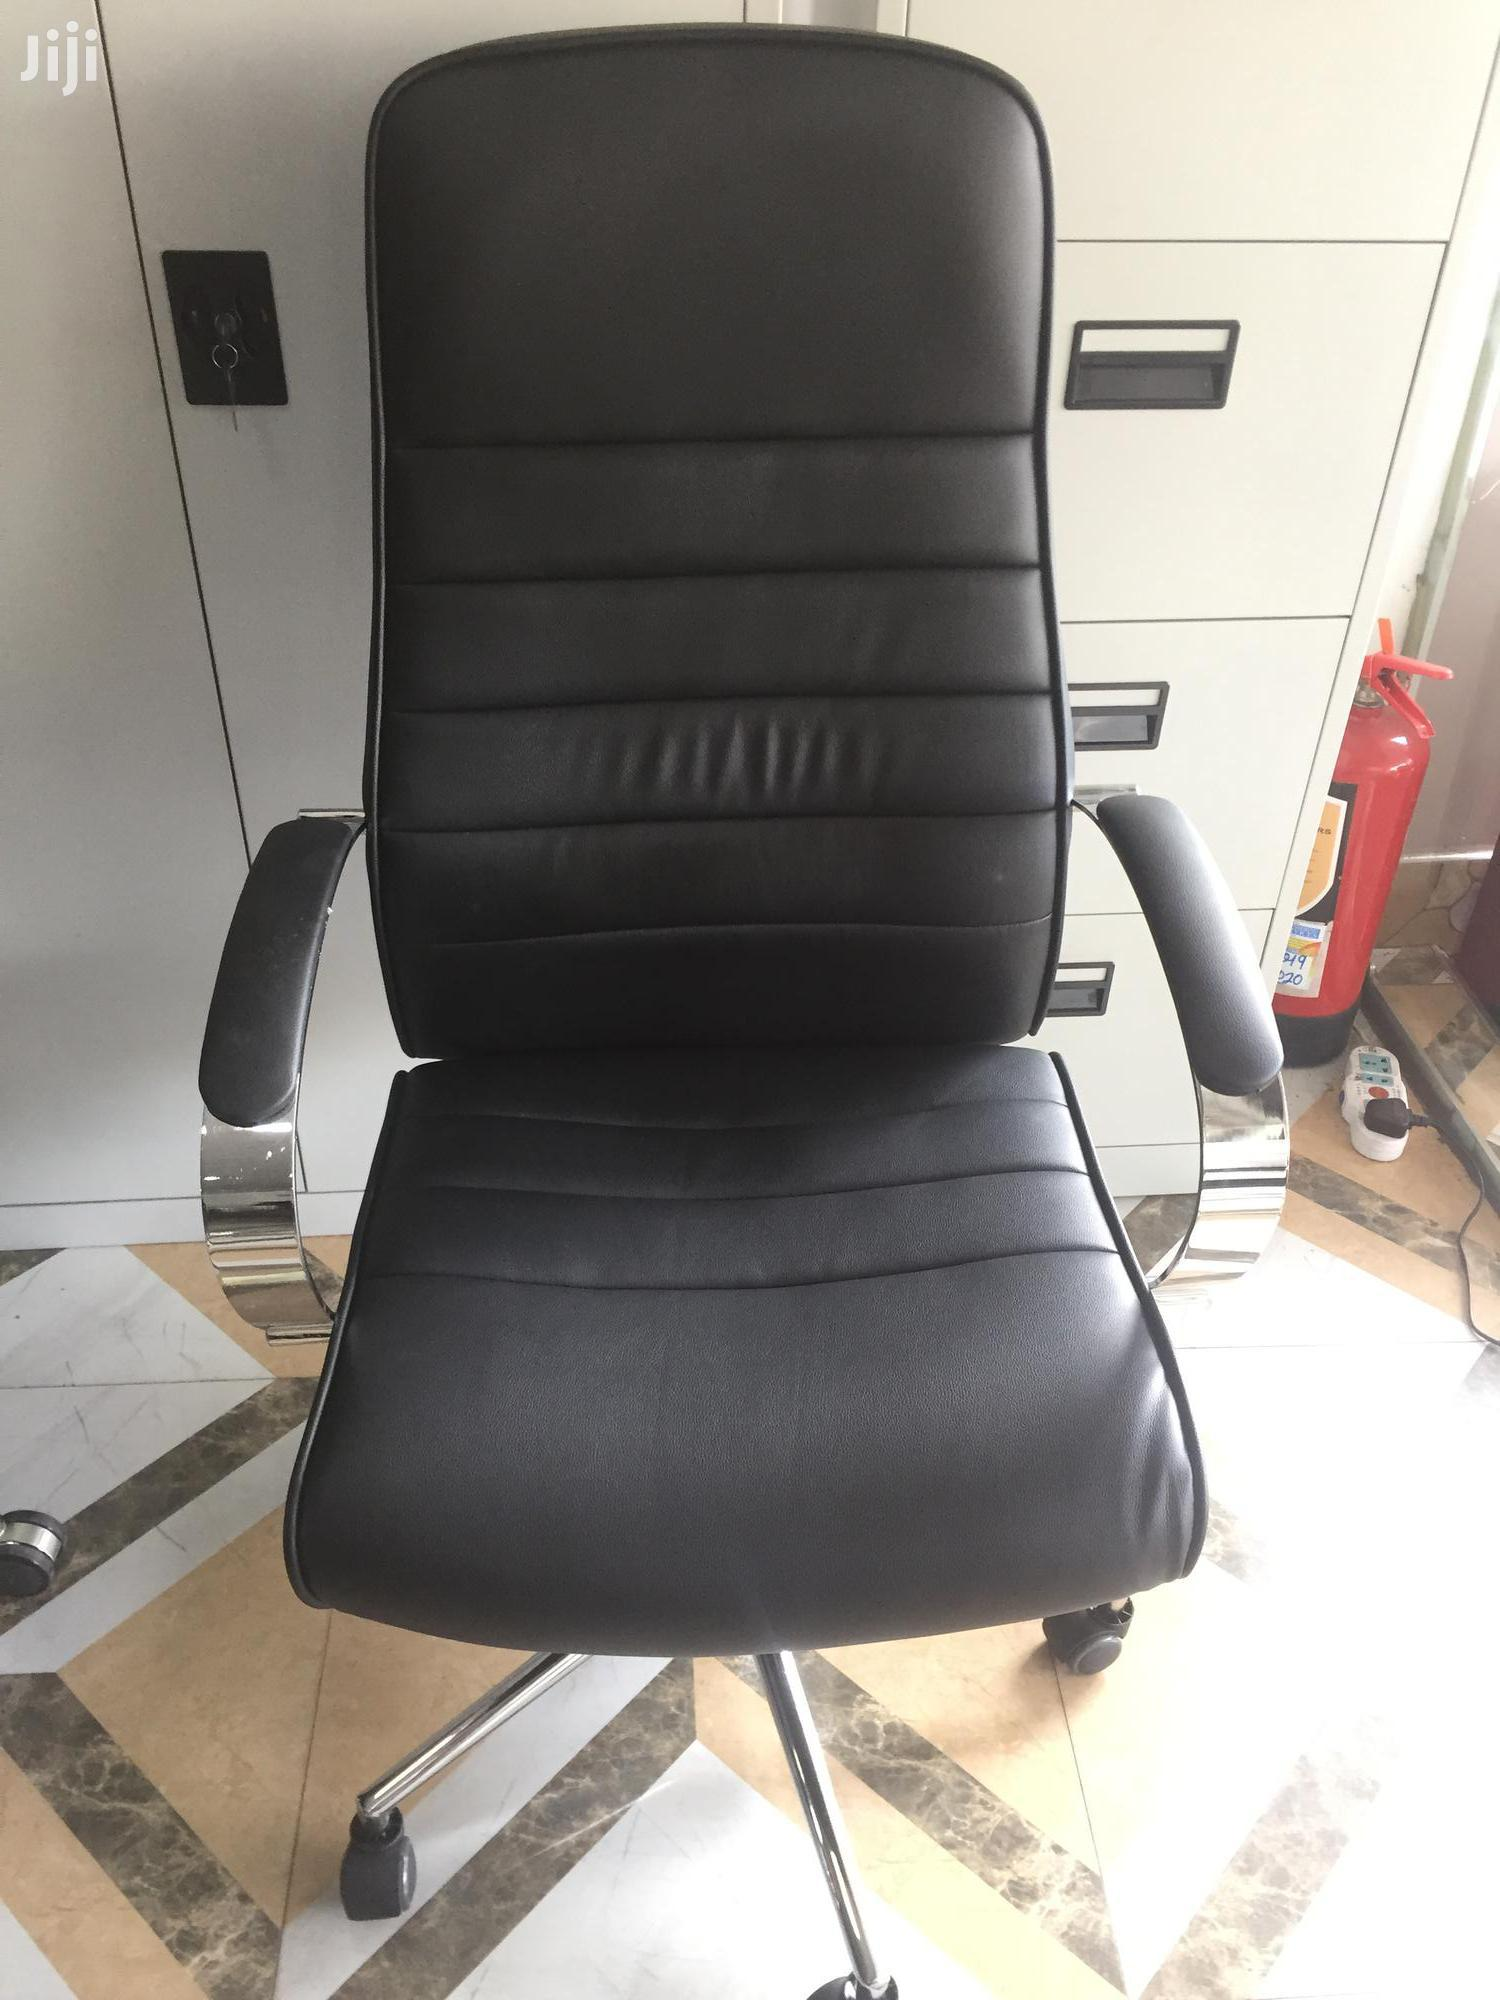 Swivel Chair | Furniture for sale in Accra Metropolitan, Greater Accra, Ghana